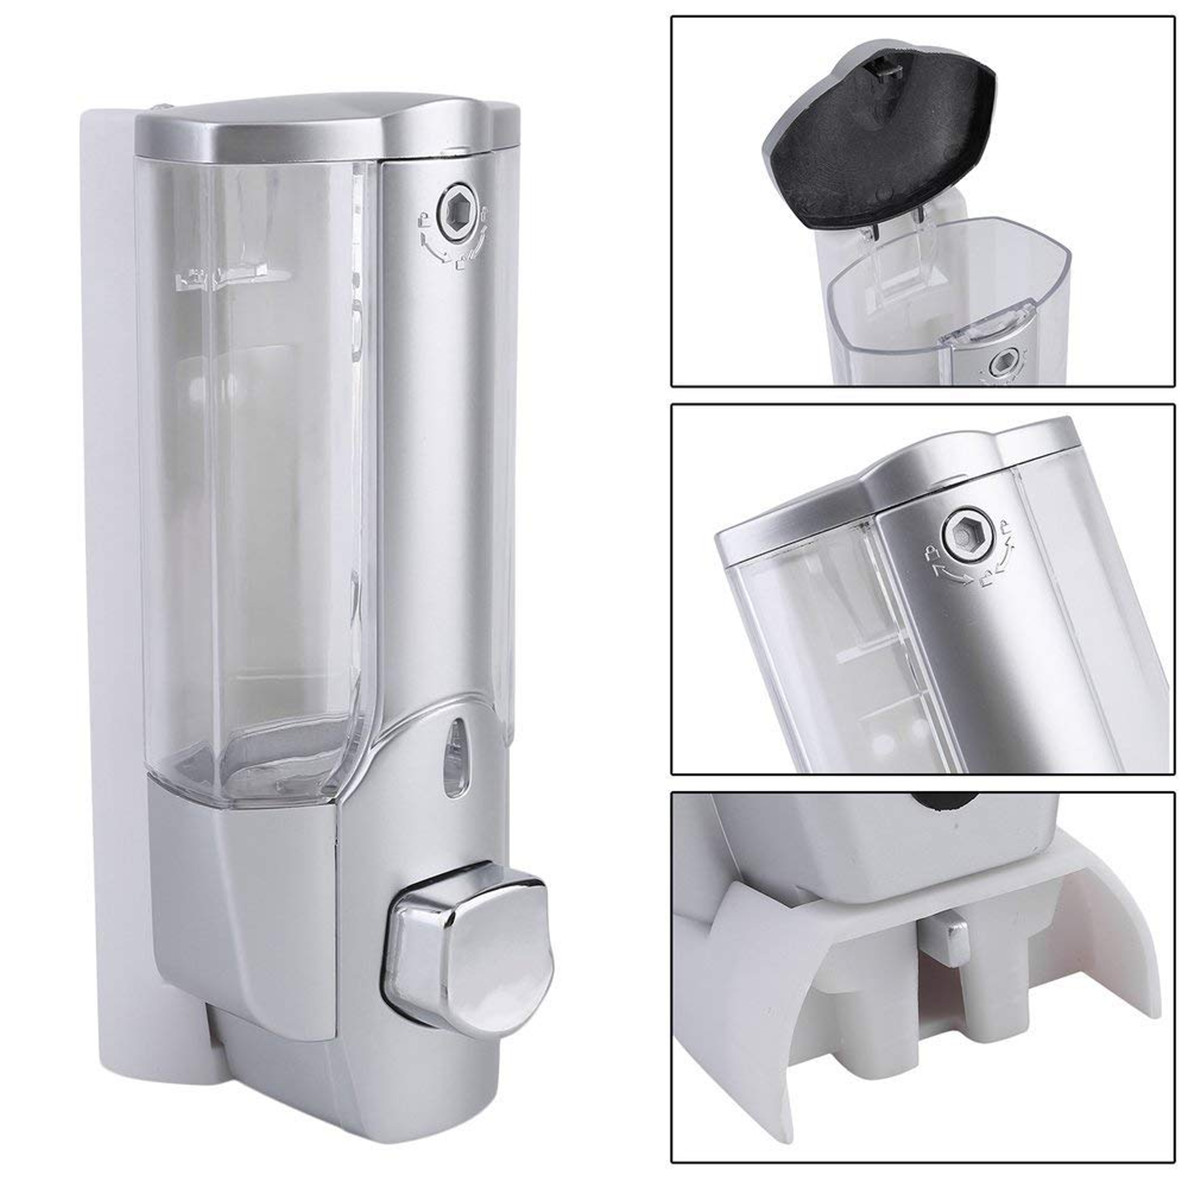 H68e203b951694cdf97ec2ce68b50247dB 350ml Hand Soap Dispenser Wall Mount Shower Shampoo Dispensers Containers with Lock for Bathroom Washroom Hand Soap Dispenser